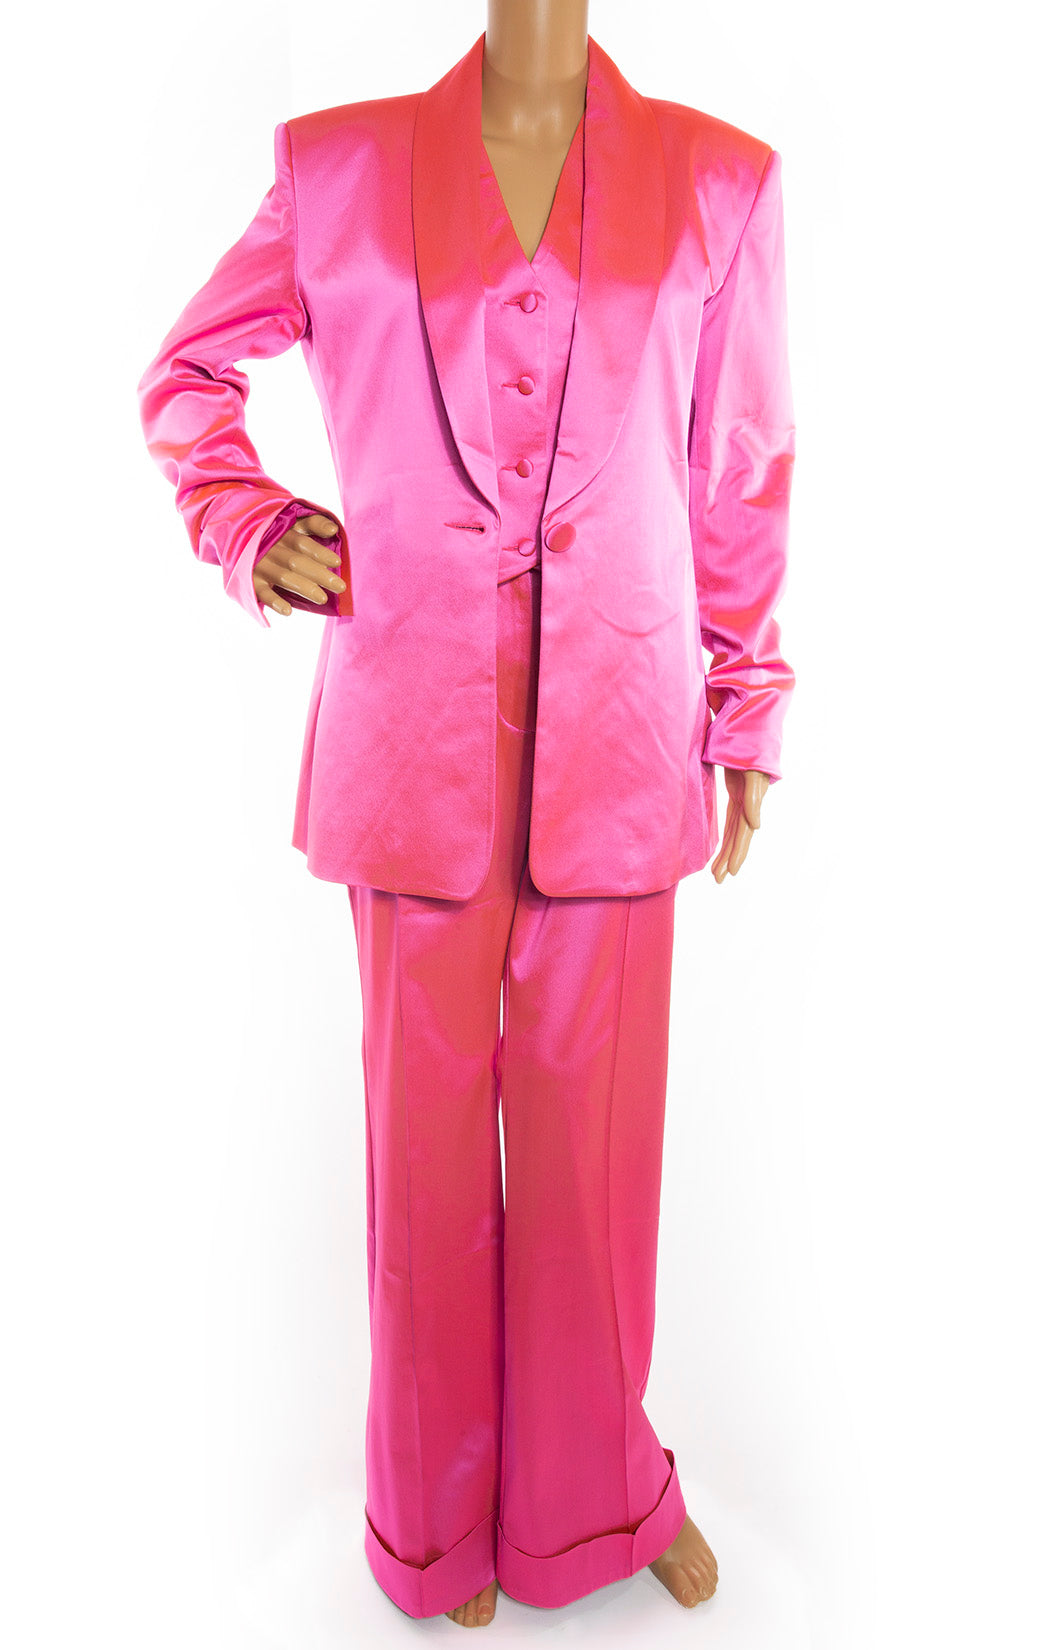 Front view of HOUSE OF HOLLAND Suit Set with Blazer, Vest, and Pants (all with tags) Size: US 6